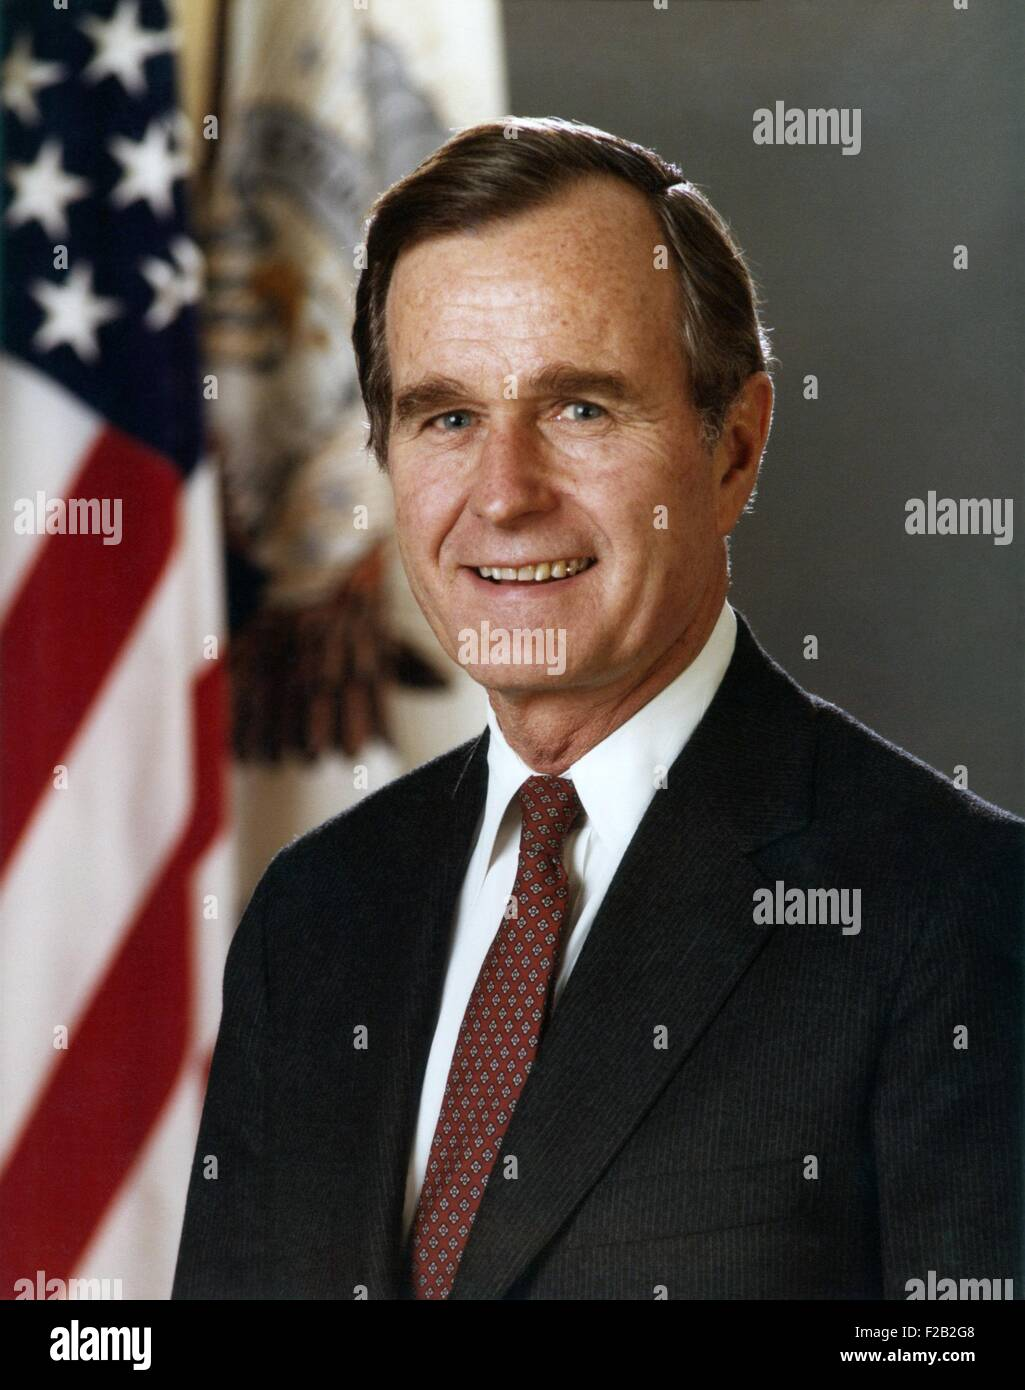 George H.W. Bush, Vice President During The Ronald Reagan Administration.  Official Portrait For The First Term From Jan 1981 Jan 1985. (CSU 2015 7  351)